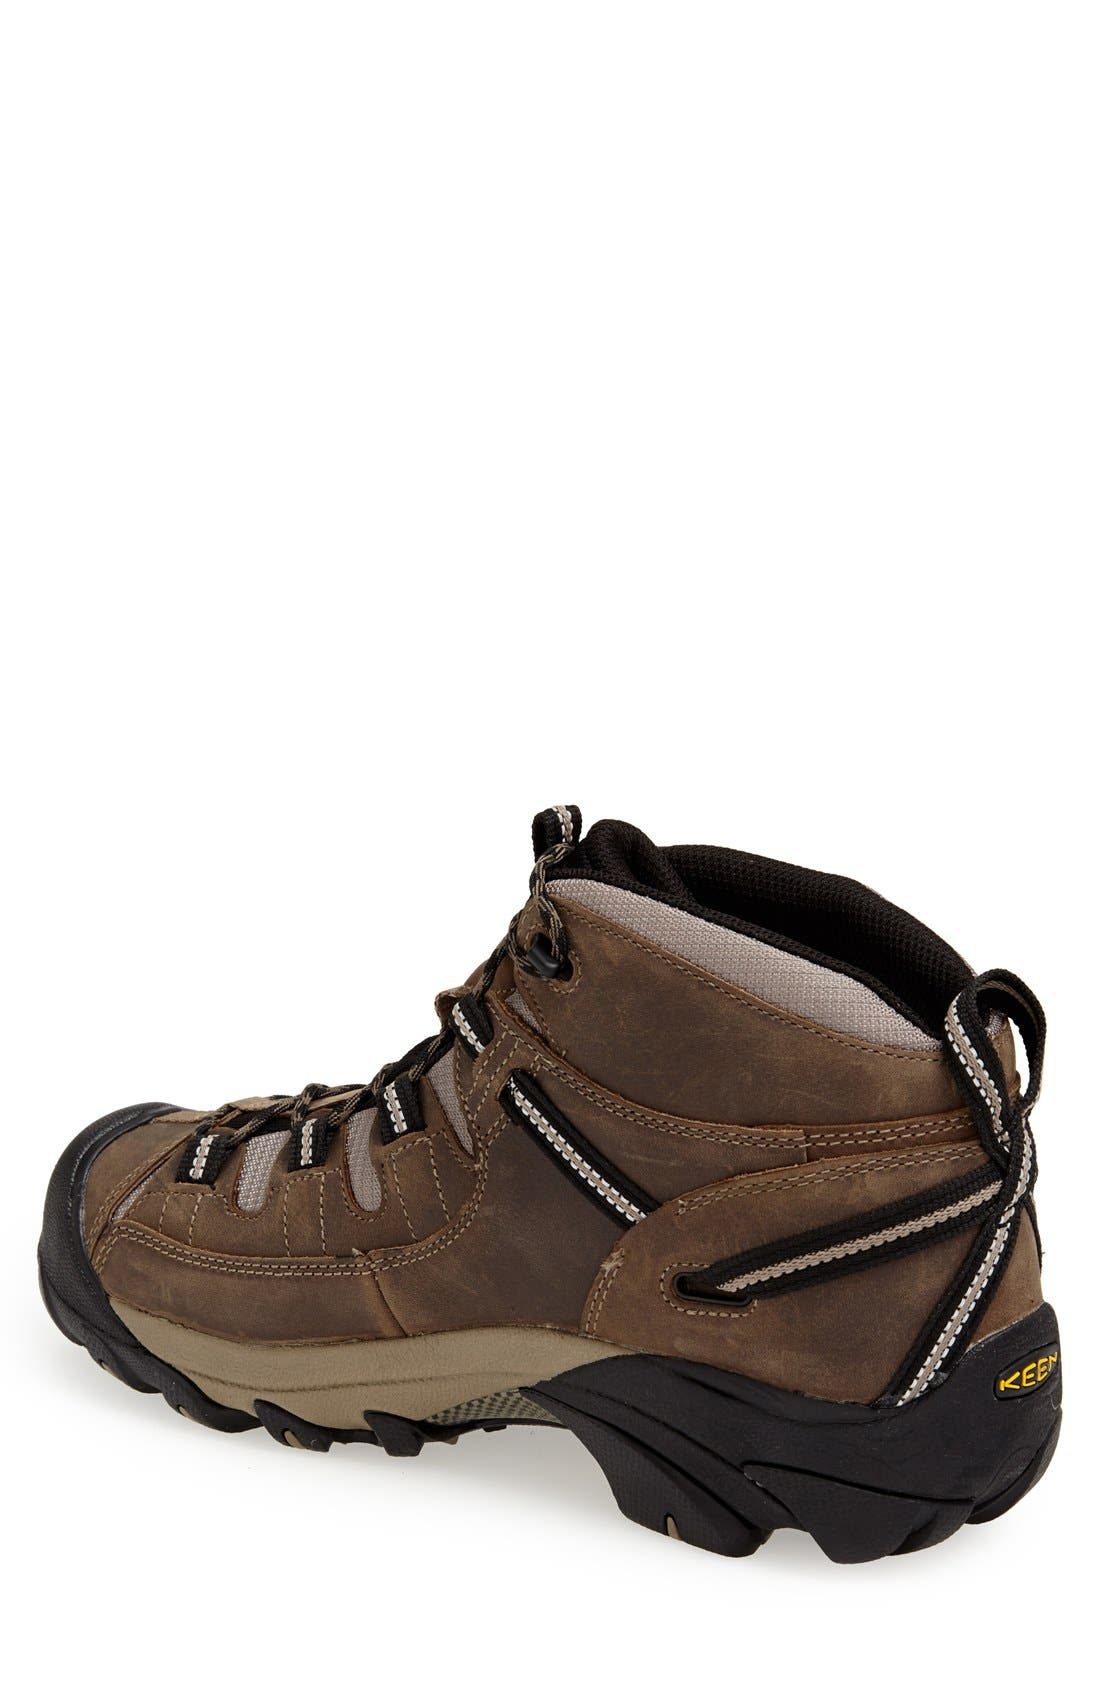 Alternate Image 2  - Keen 'Targhee II Mid' Hiking Boot (Men)